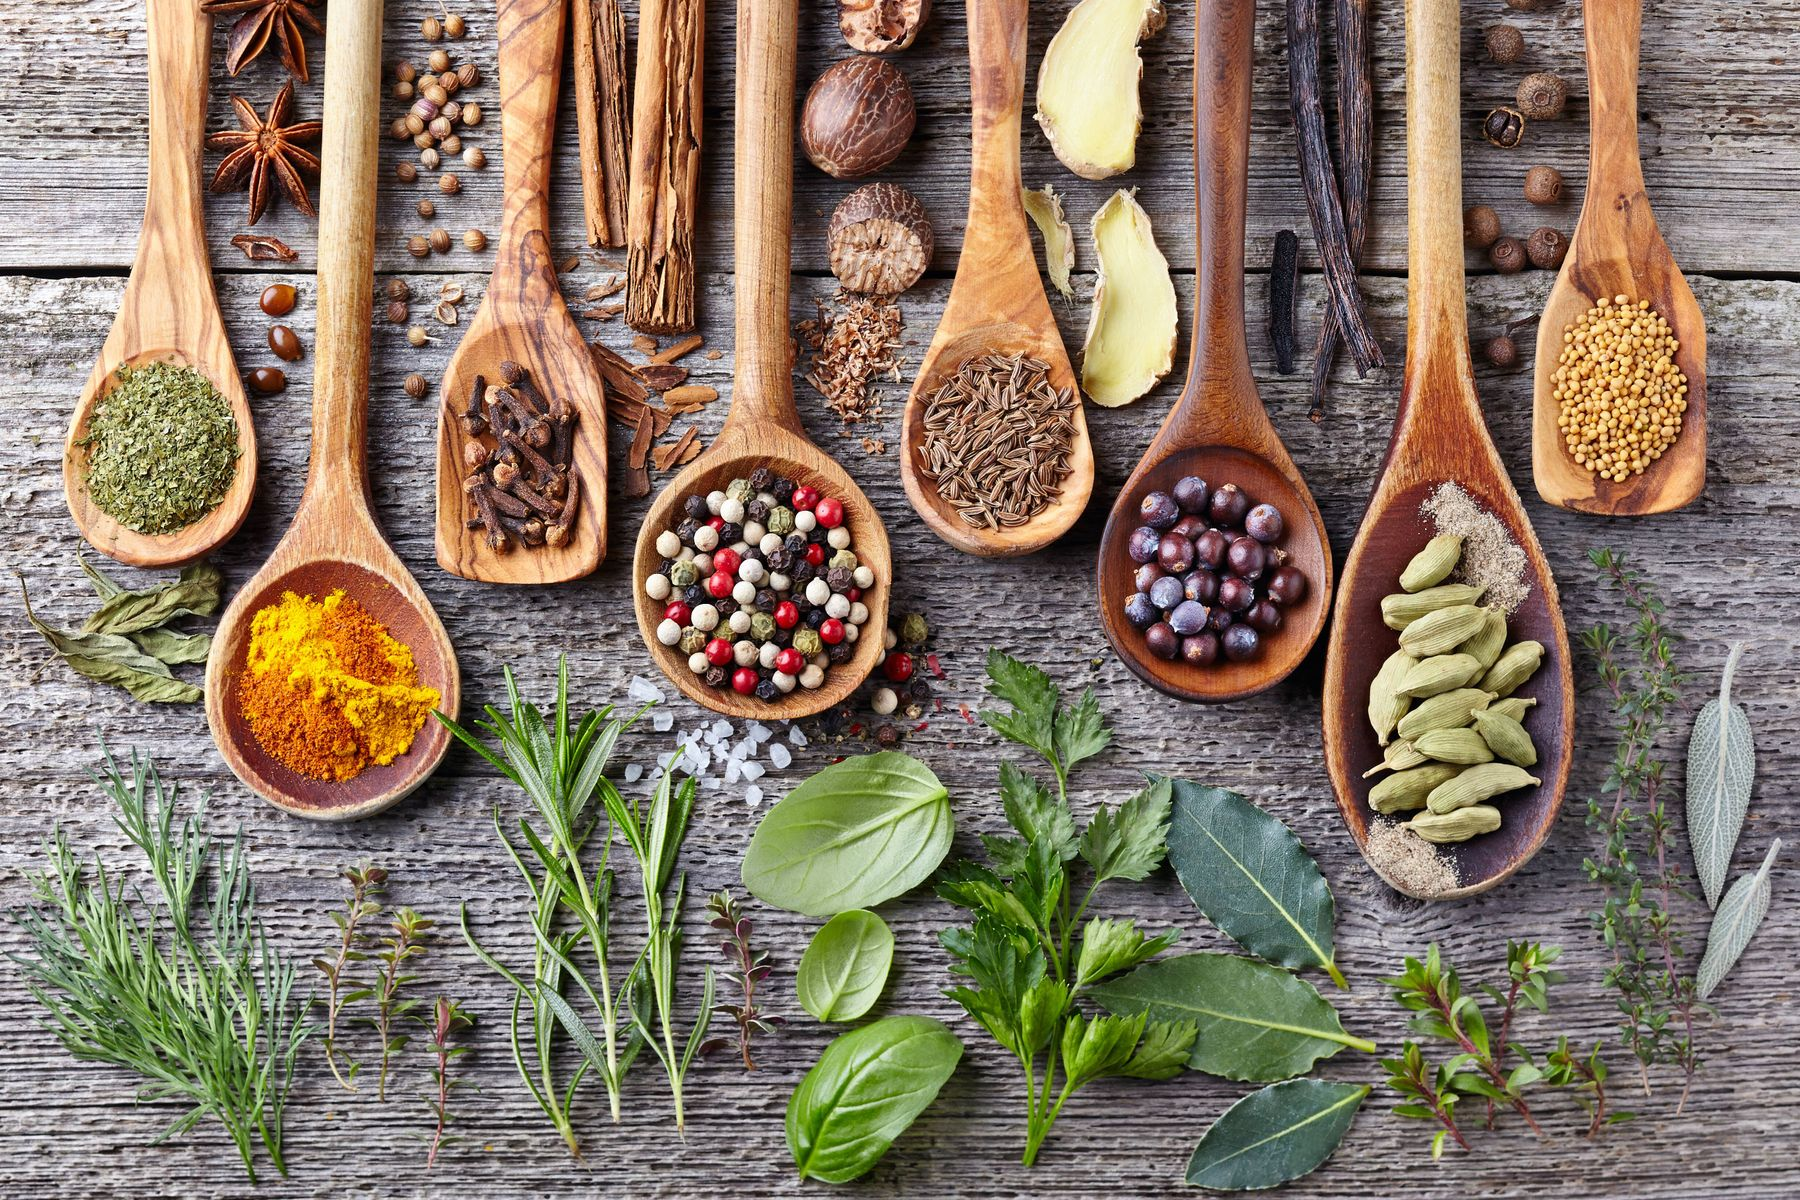 wooden spoons with various herbs, spices, and seasonings